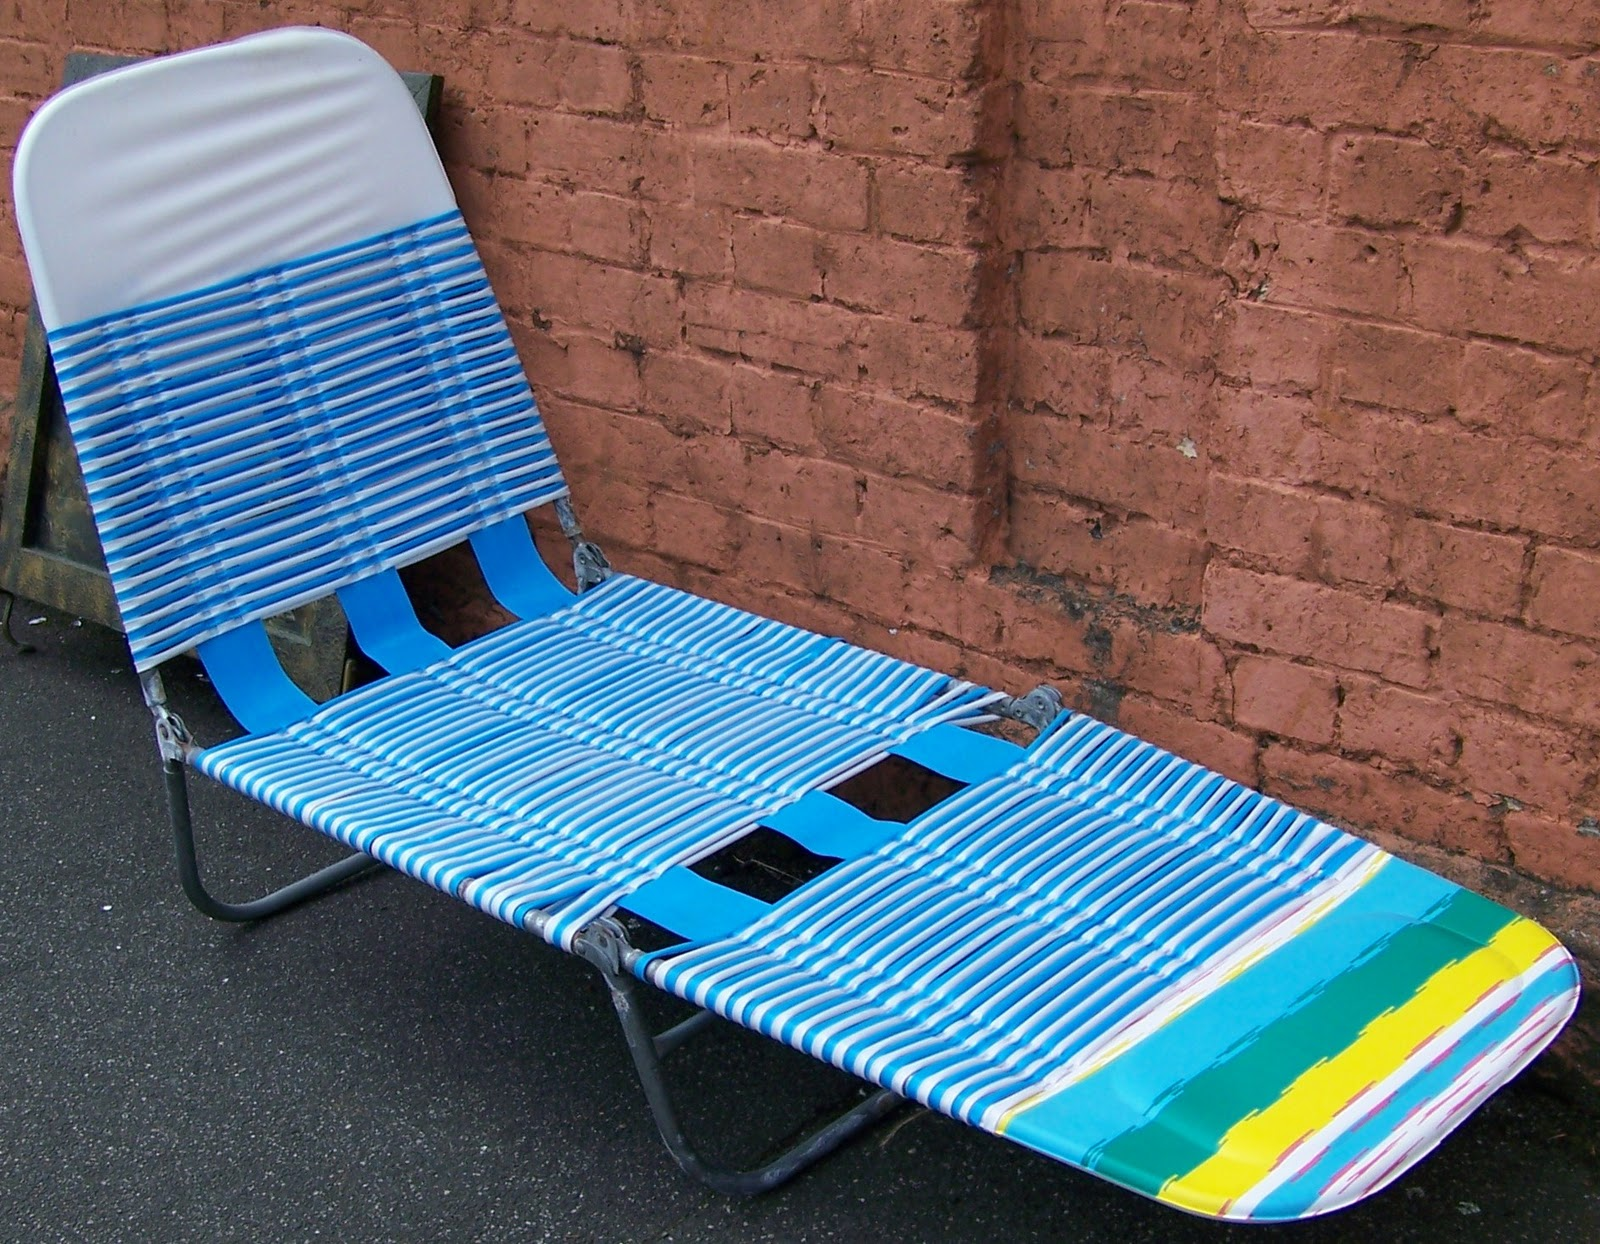 Folding Banana Lounge Chair Cushion Covers Canada Recycled Relix October 2011